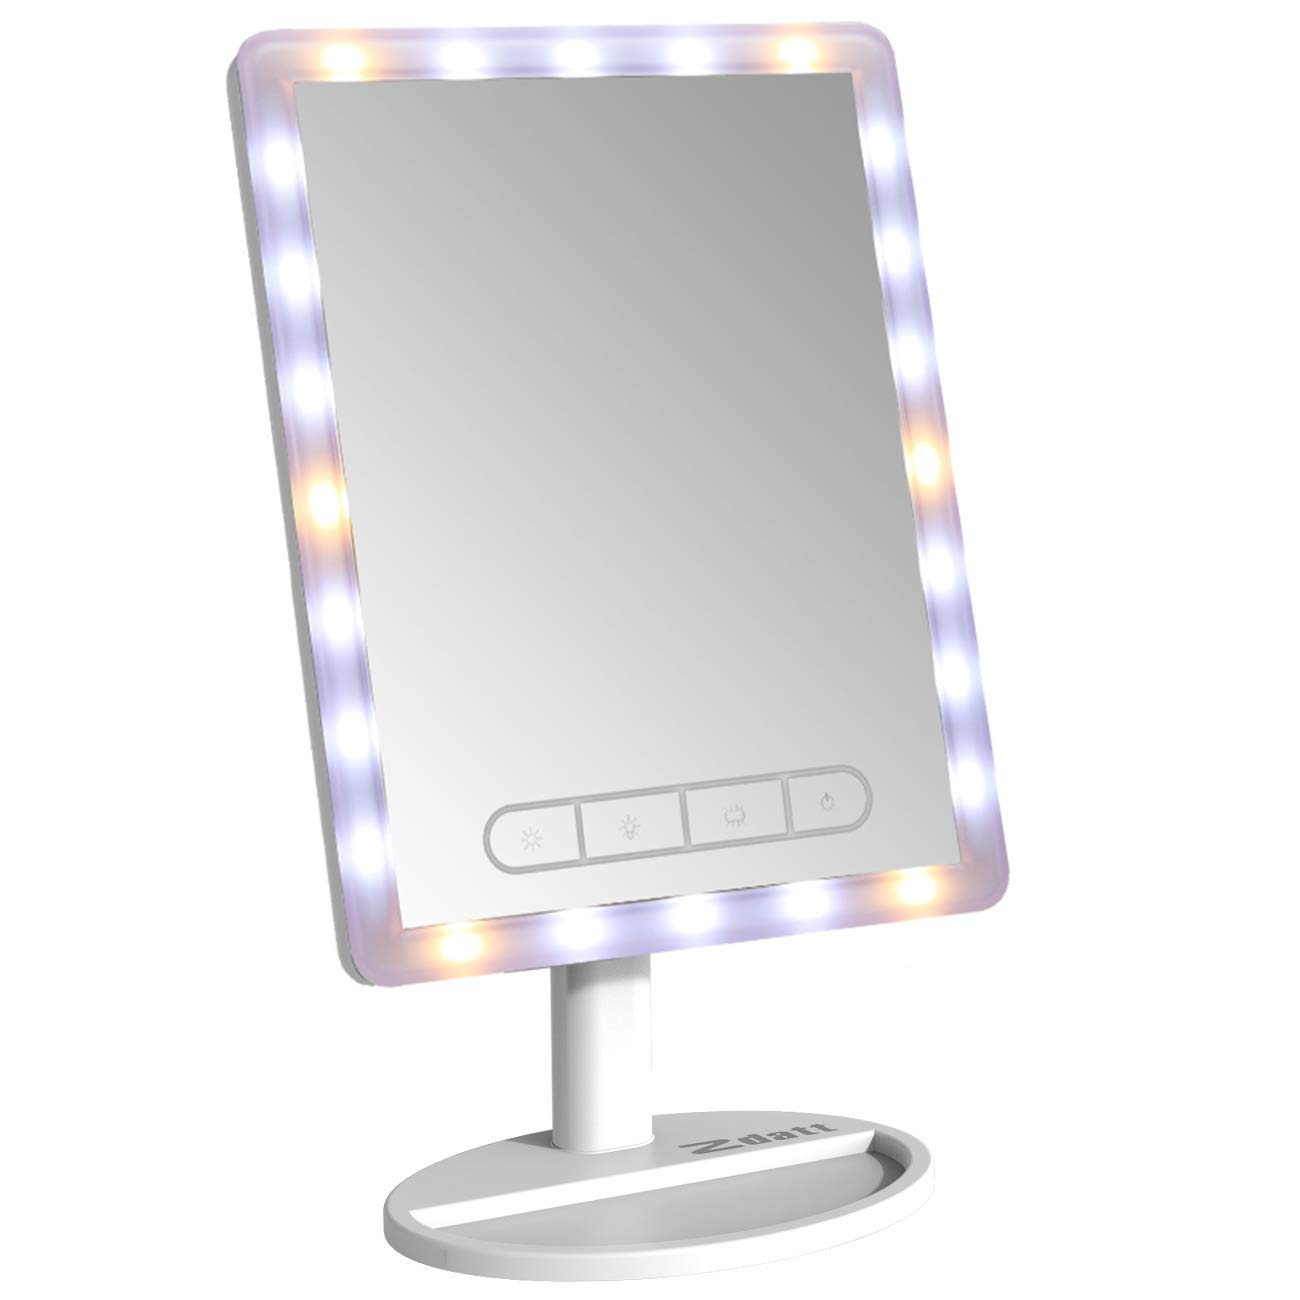 16 Large Vanity Makeup Mirror with Lights Vanity Lighted LED Makeup Mirror with 24 LED Lights Make Up Mirror Cosmetic Mirrors Table Set Touch-Screen Light Control Adjustable Cosmetic White by Zdatt